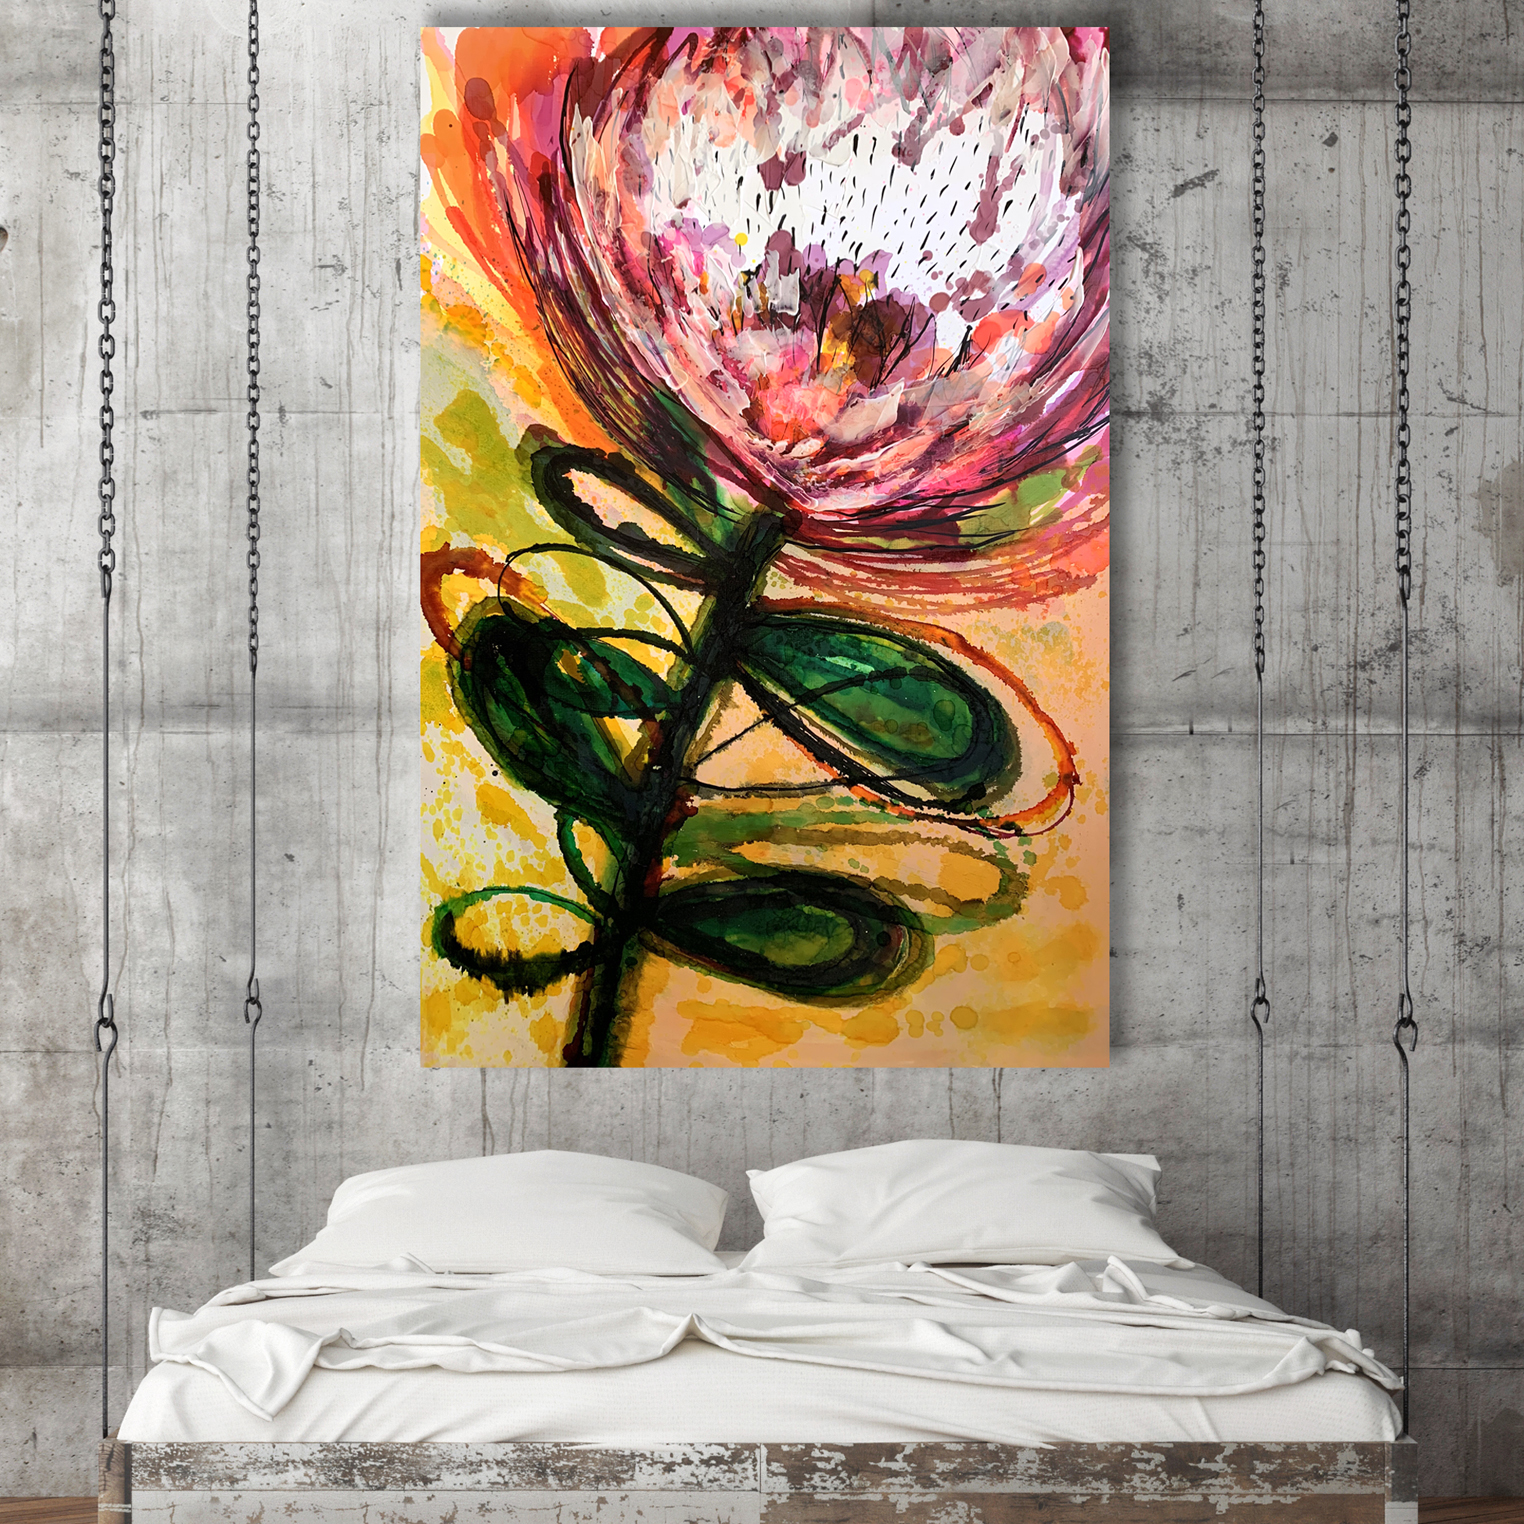 Original Abstract Floral Paintings for Sale 'Sugar Bush' by Australian artists Jessica Skye Baker & Nicole Baker